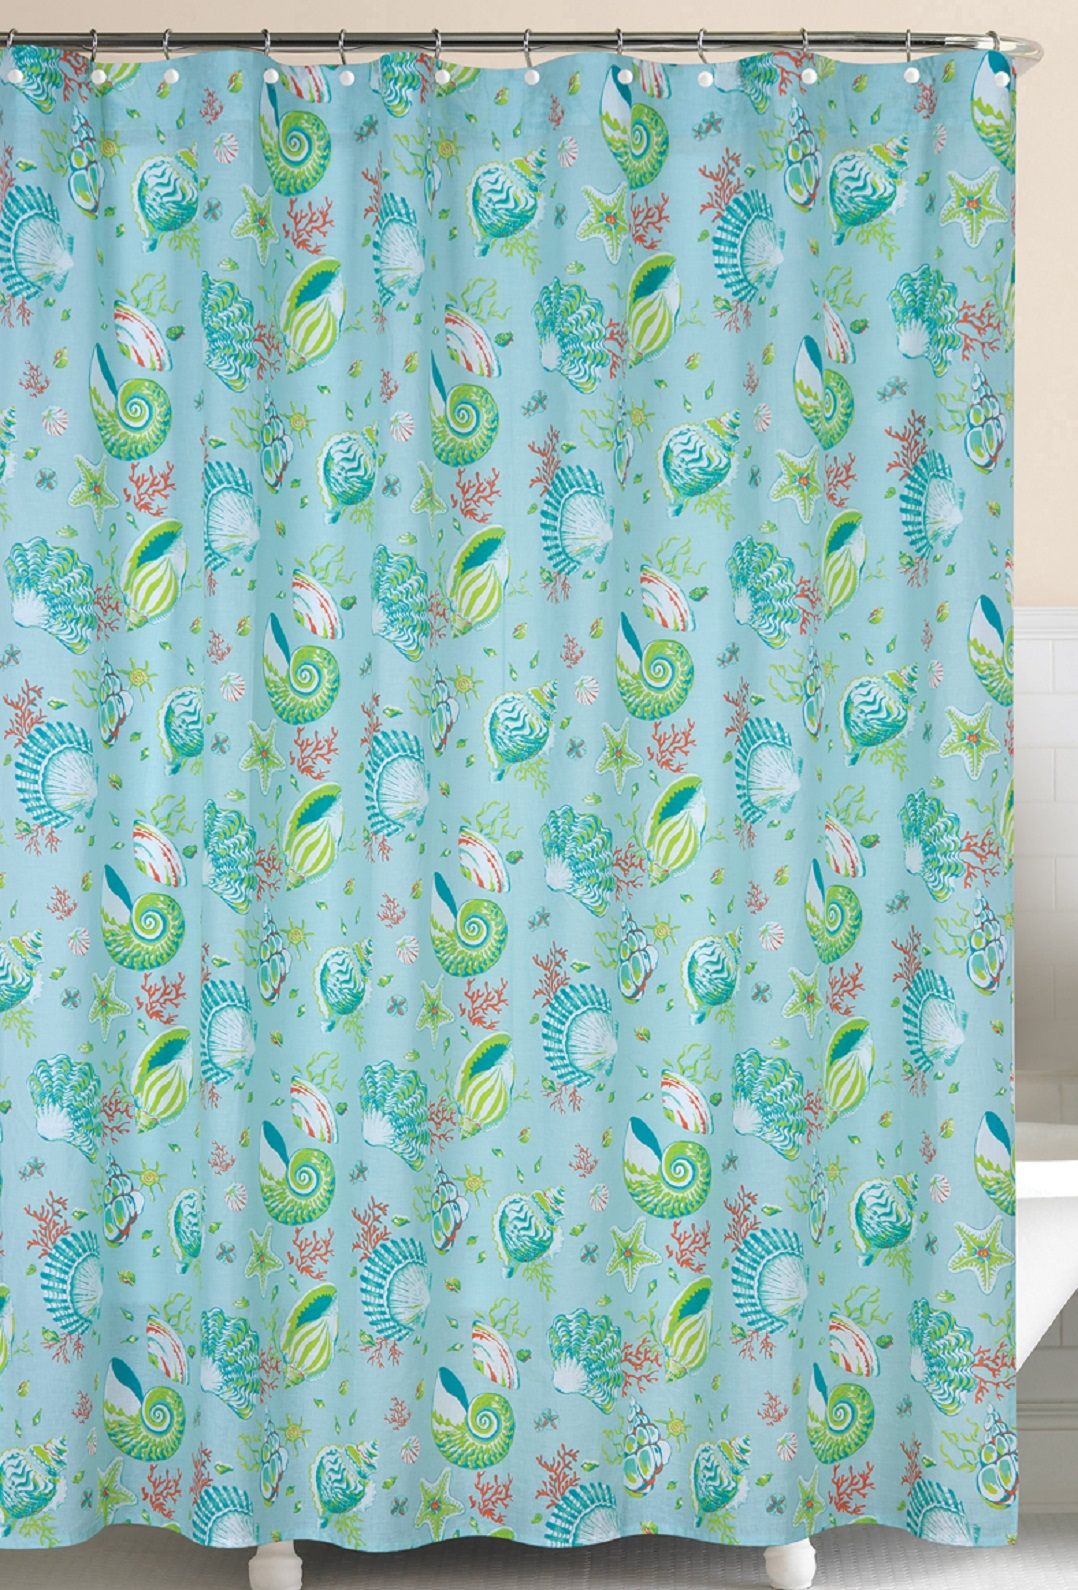 Laguna Breeze Shells And Coral Blue And Green Cotton Shower Curtain EBay